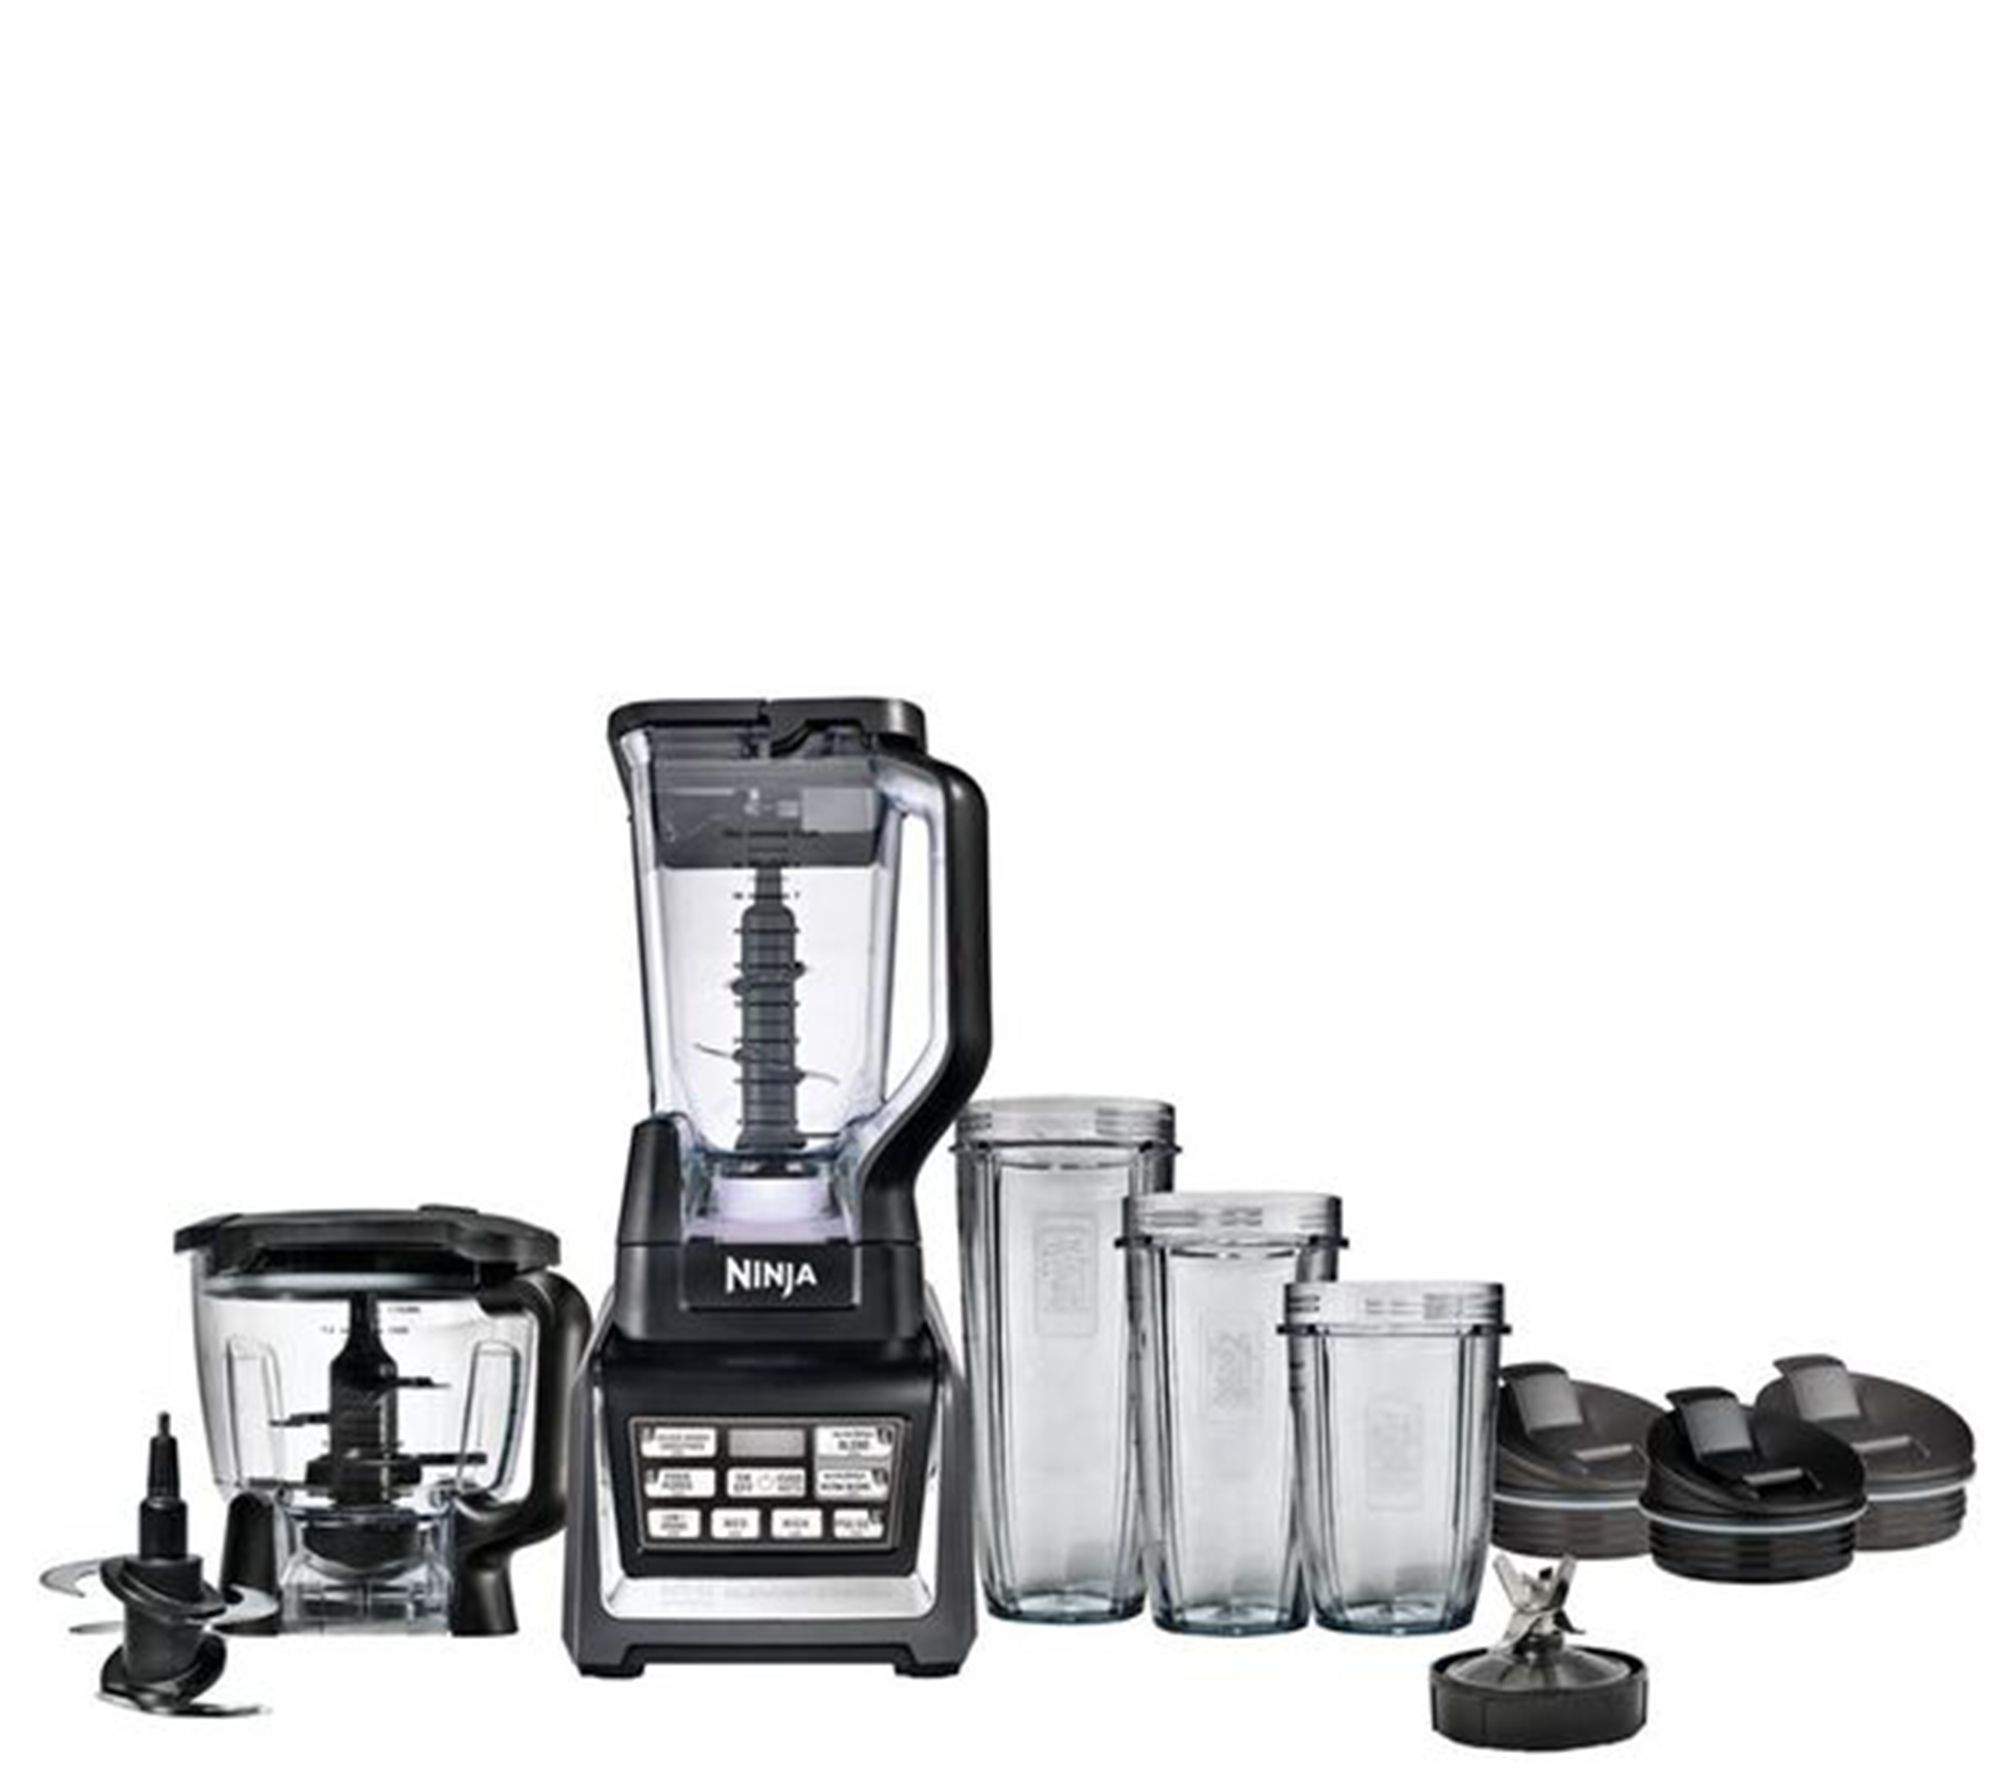 ninja top professional mega system kitchen portrait contemporary construction recipes professio pro blender